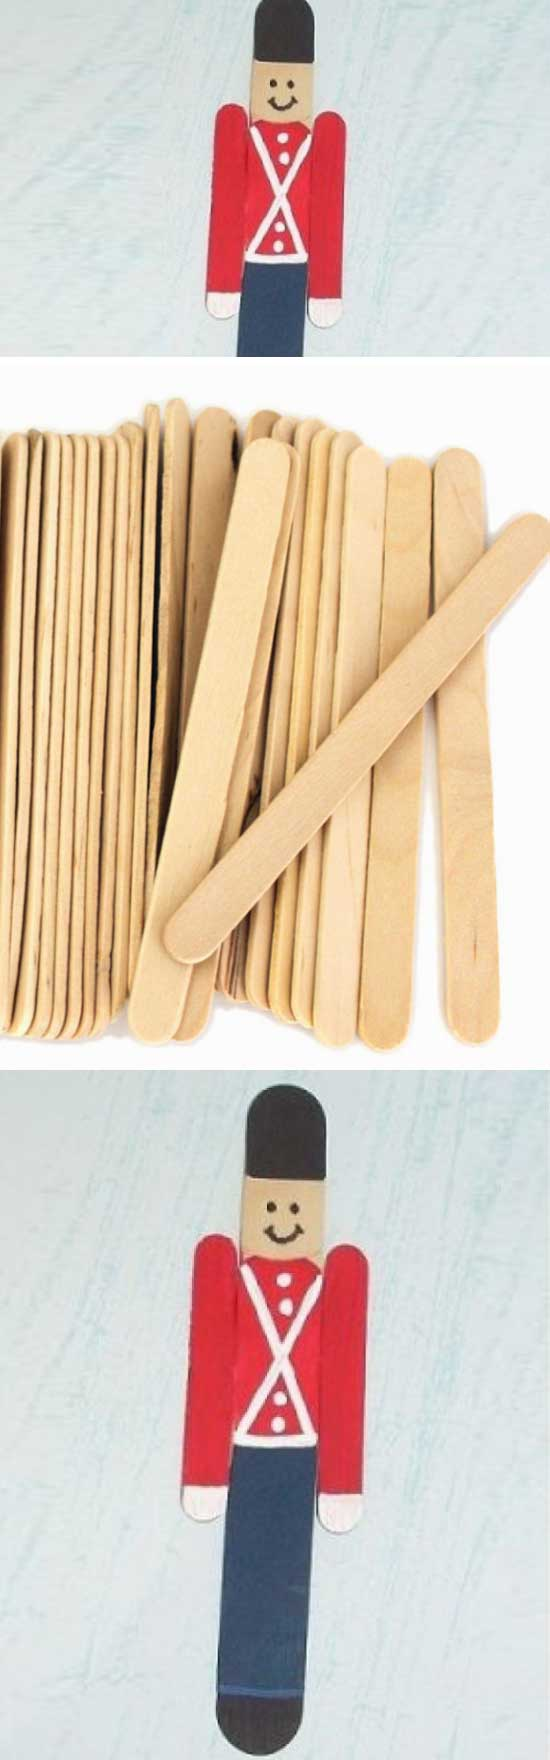 26 DIY Ideas and Tutorials to Recycle Popsicle Sticks for Christmas